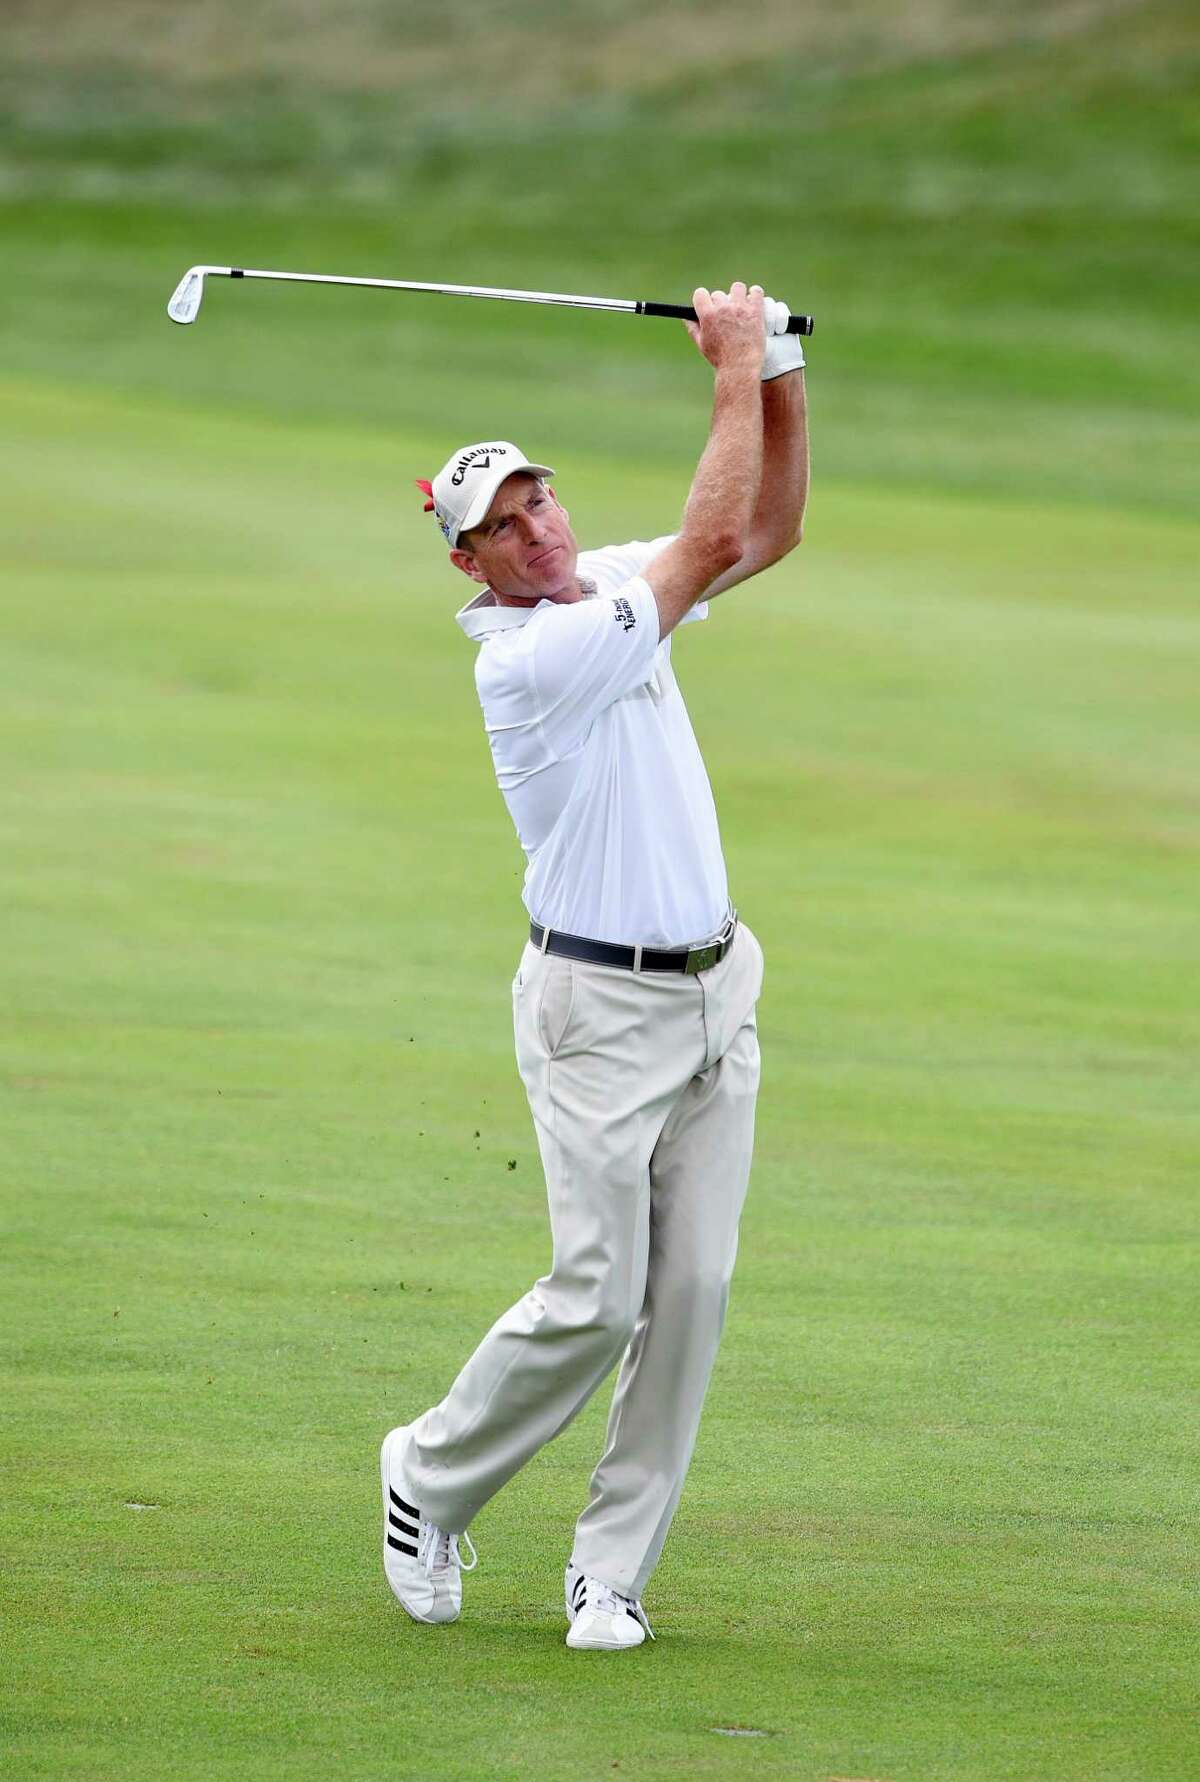 Jim Furyk watches his approach shot on the 18th hole on his way to shooting a PGA record 58 during the final round of the Travelers Championship golf tournament in Cromwell, Conn., Sunday, Aug. 7, 2016. (AP Photo/Fred Beckham) ORG XMIT: CTFB106